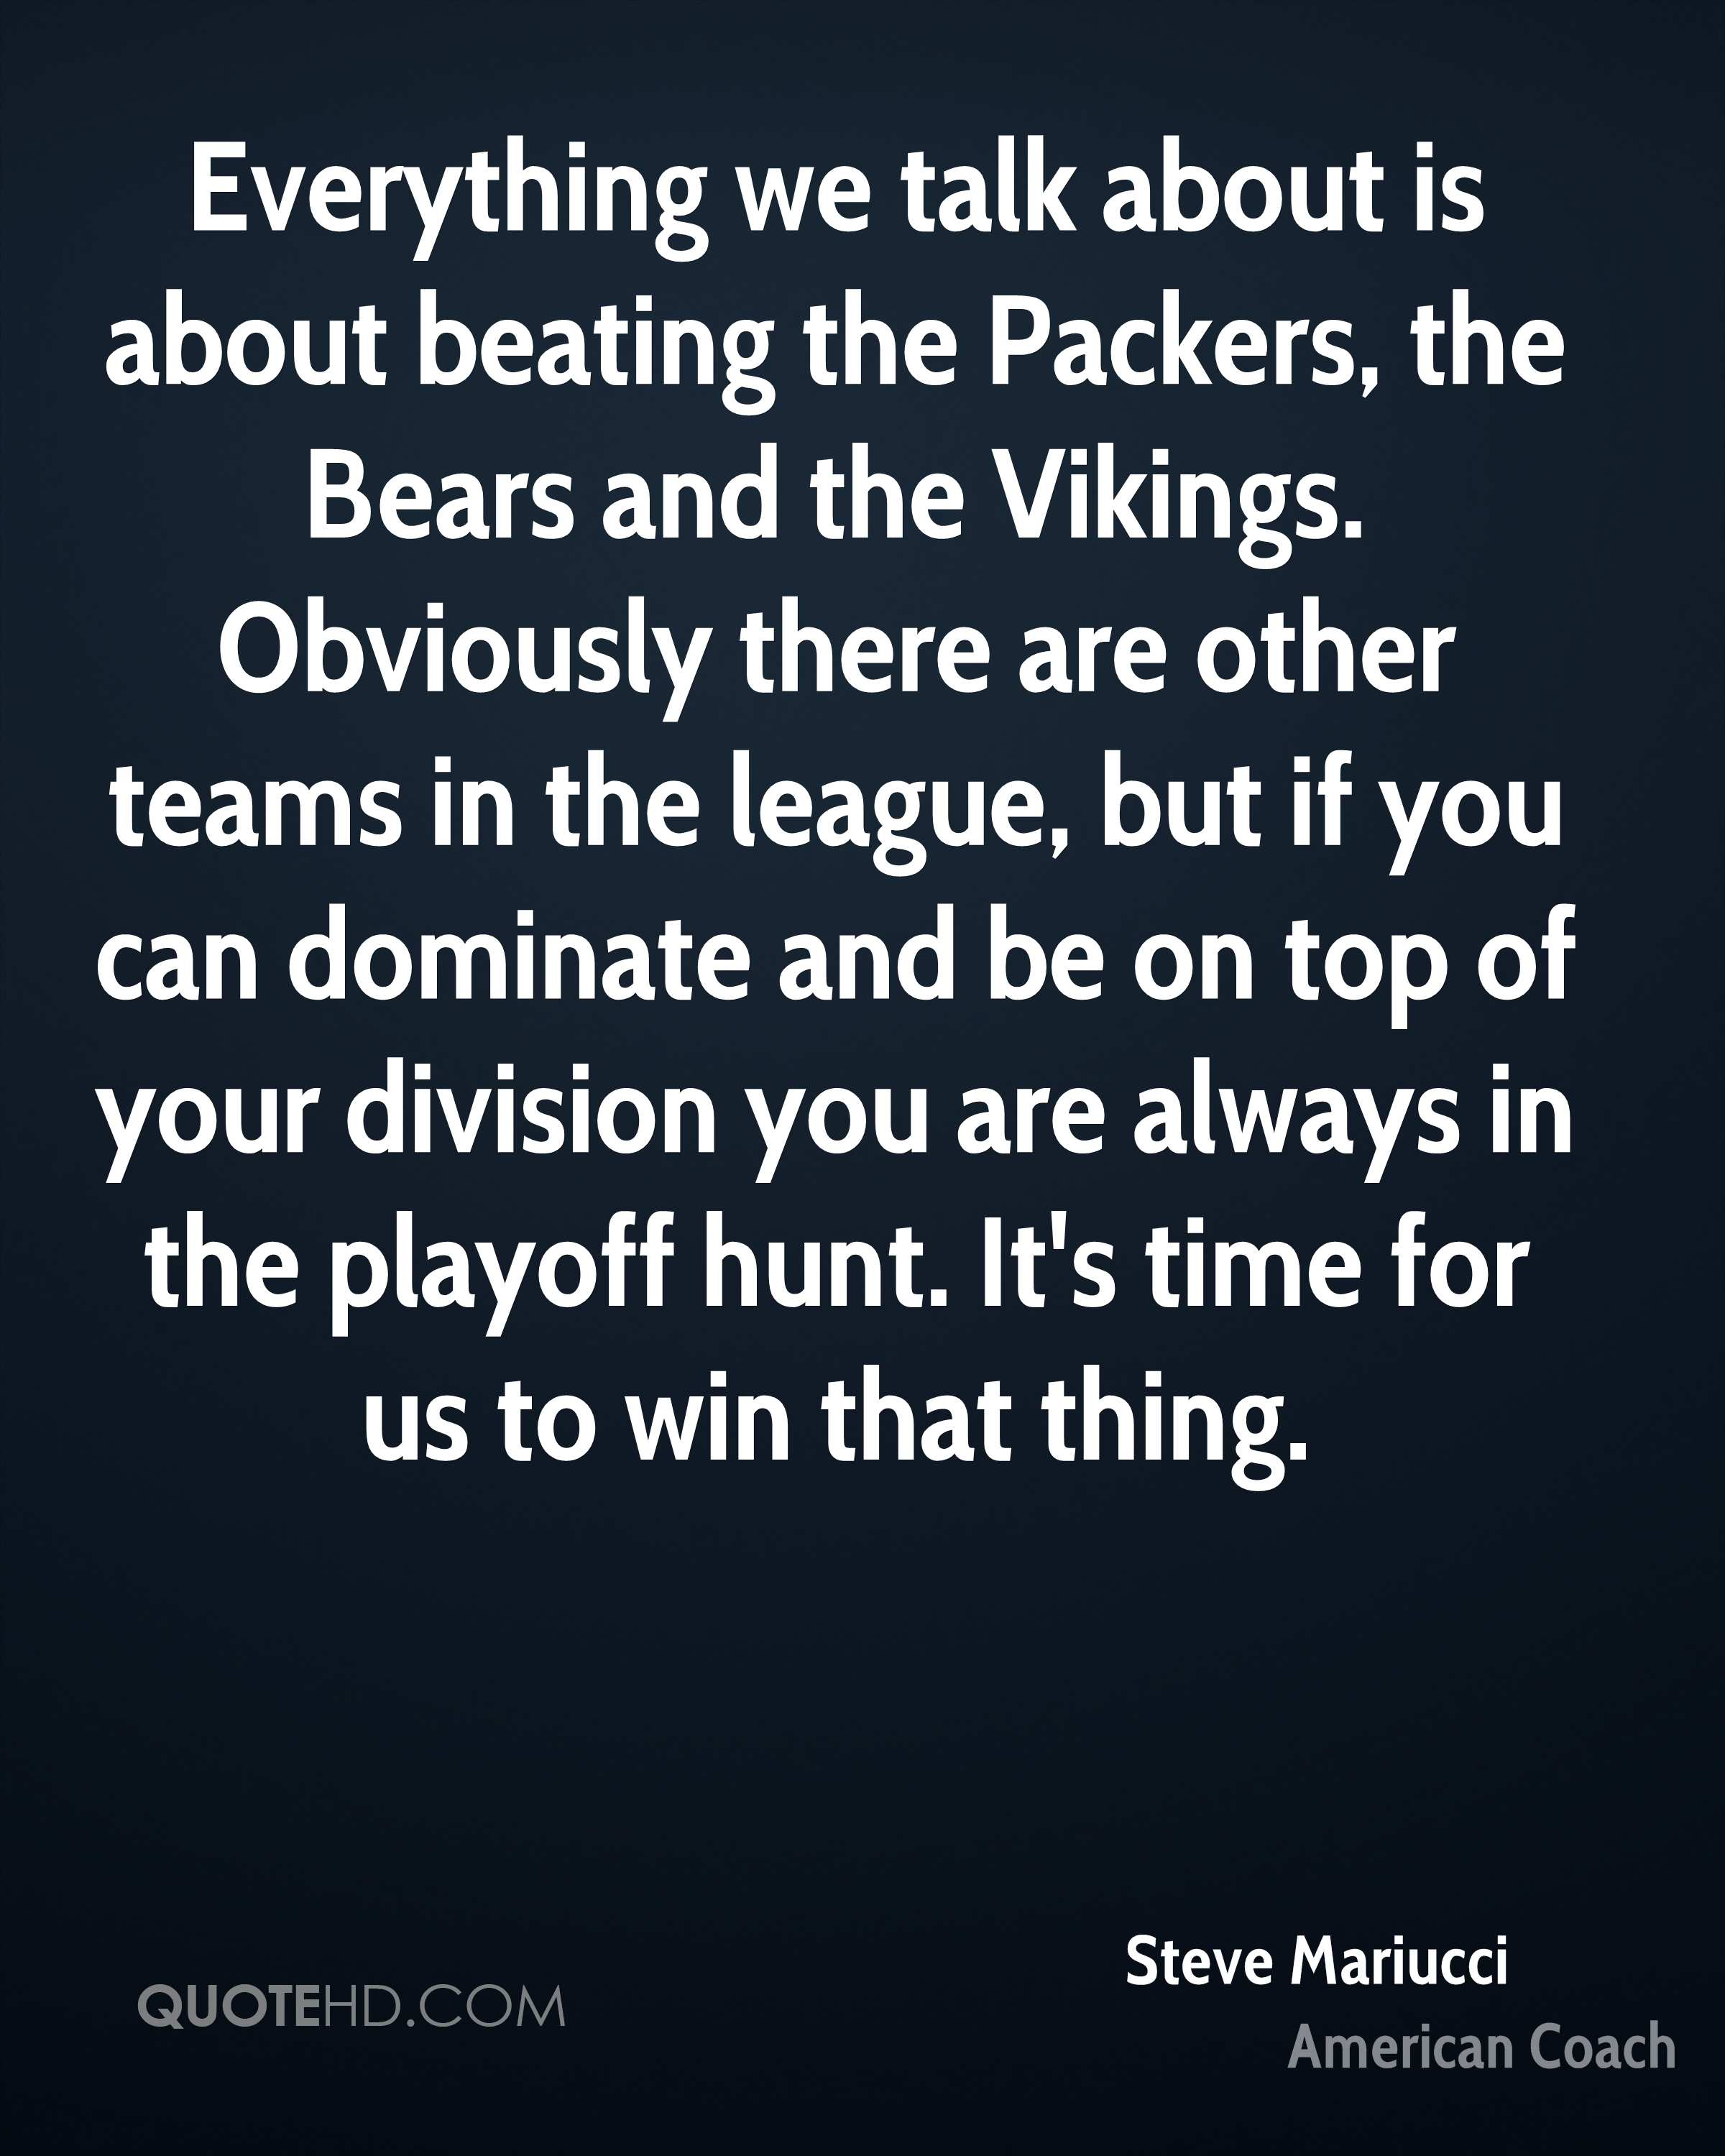 Everything we talk about is about beating the Packers, the Bears and the Vikings. Obviously there are other teams in the league, but if you can dominate and be on top of your division you are always in the playoff hunt. It's time for us to win that thing.